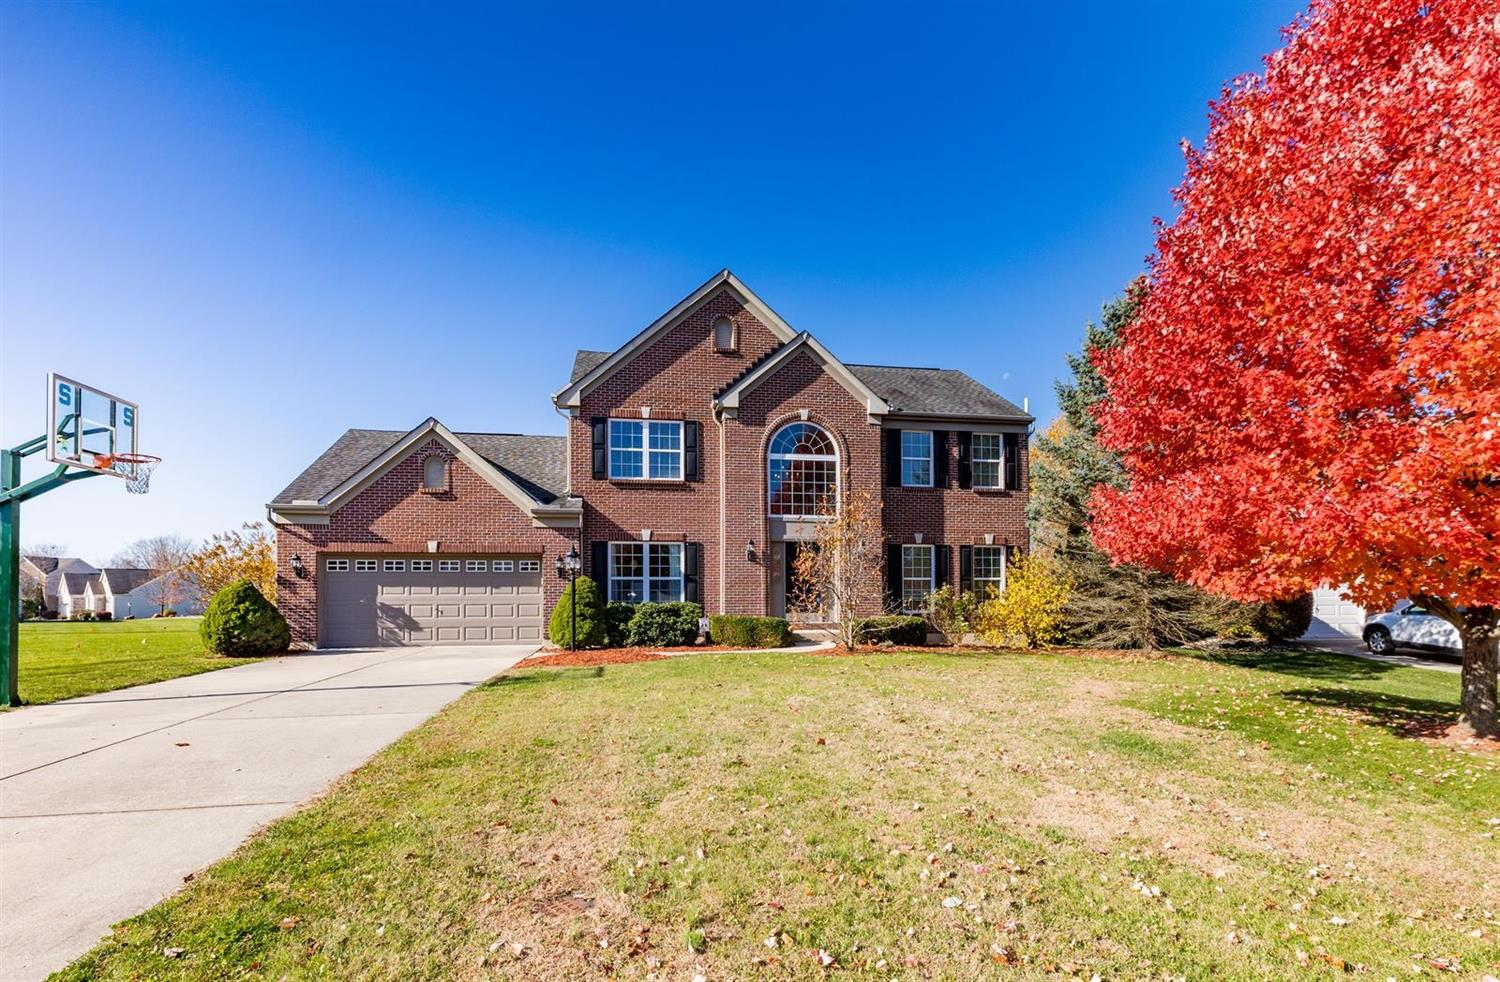 Property for sale at 179 Hounds Run, Loveland,  Ohio 45140